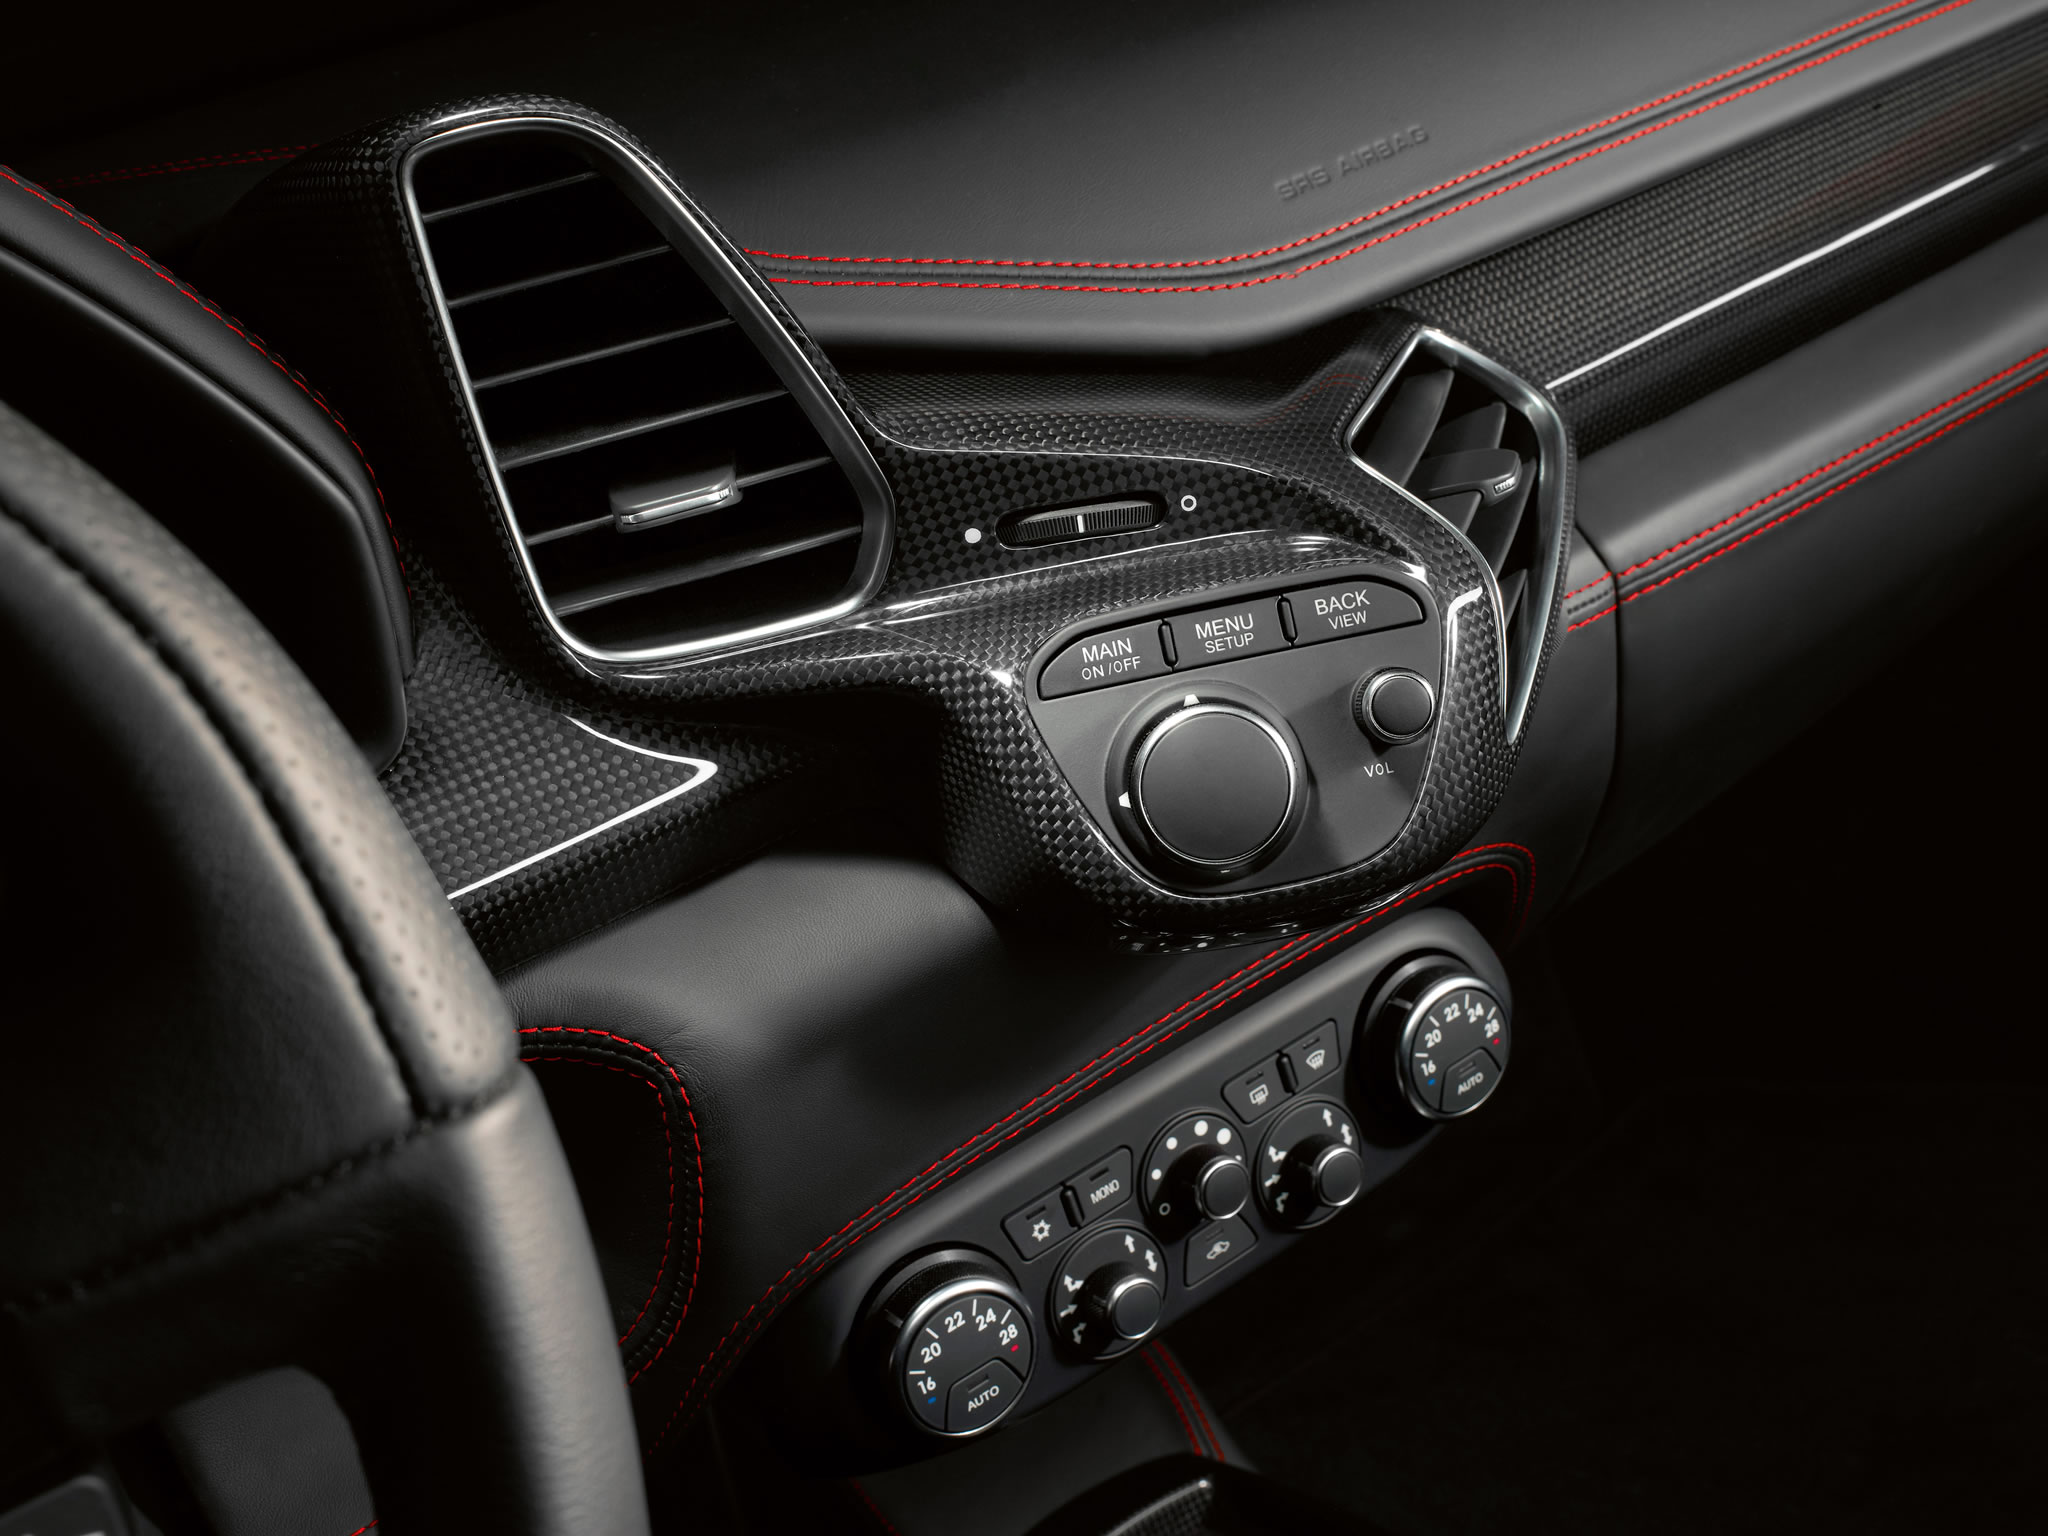 2014 Ferrari 458 Spider - interior - 327.5KB